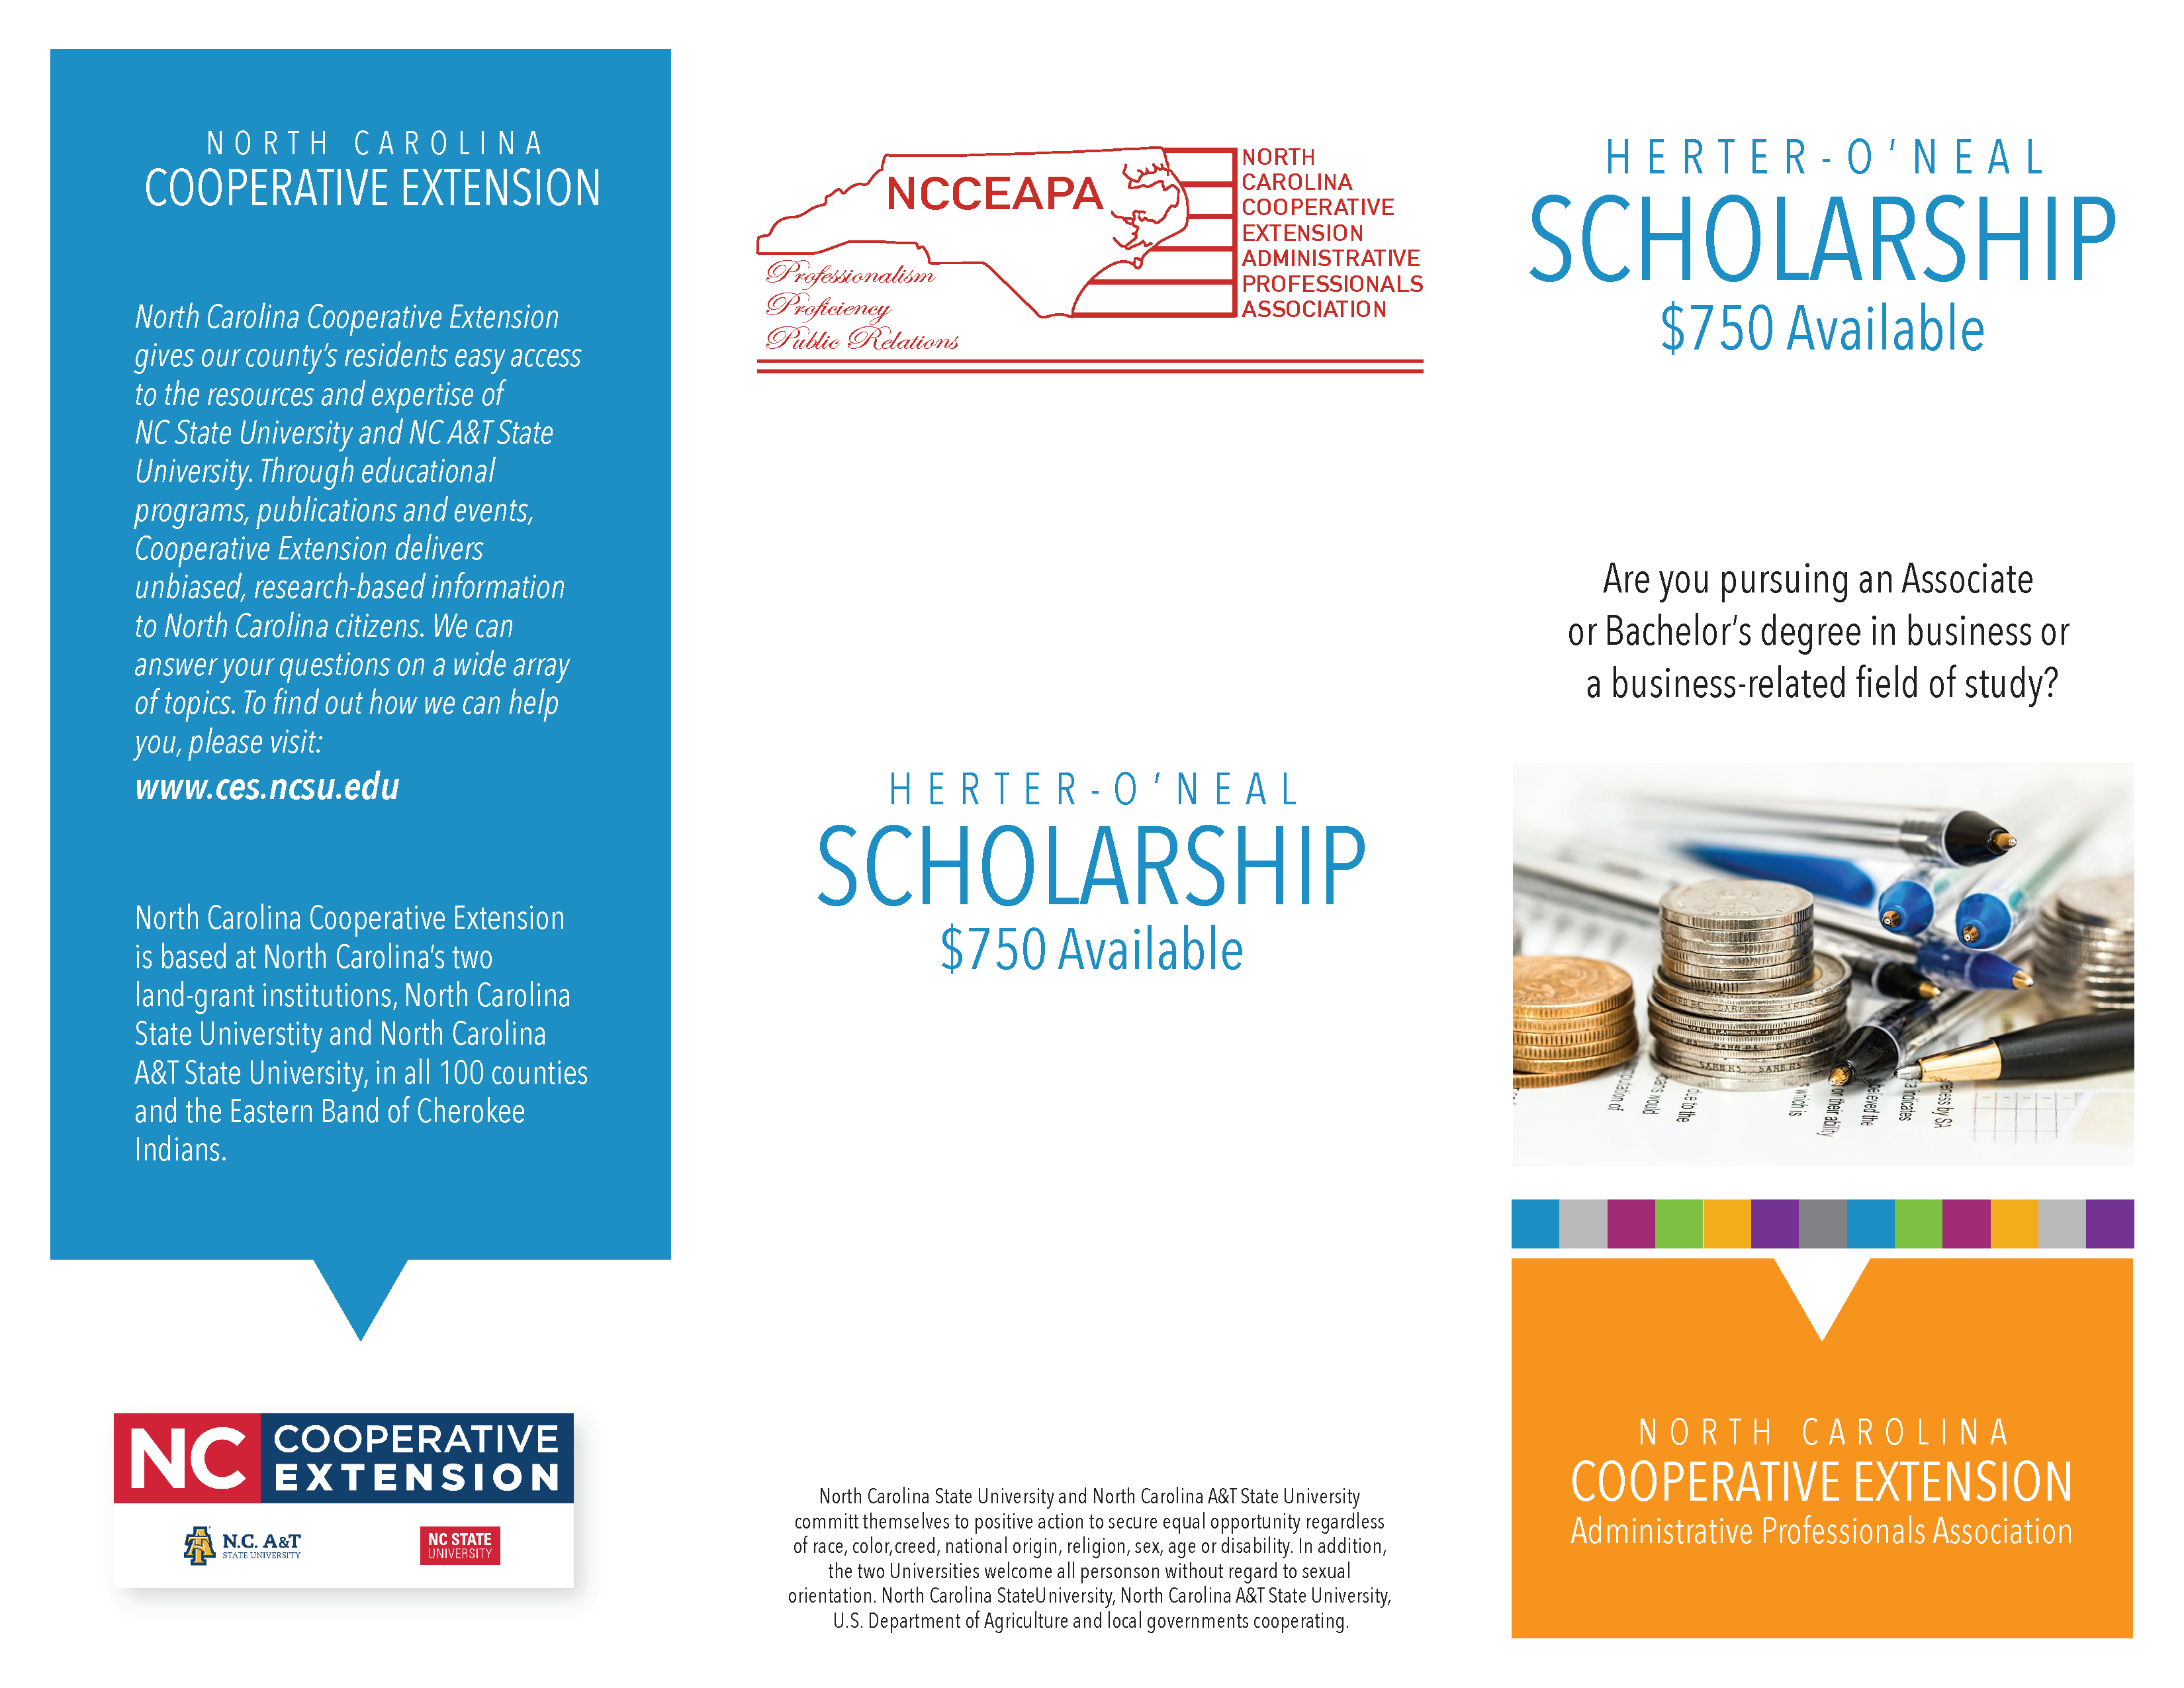 Herter-O'Neal Scholarship informational brochure page 1